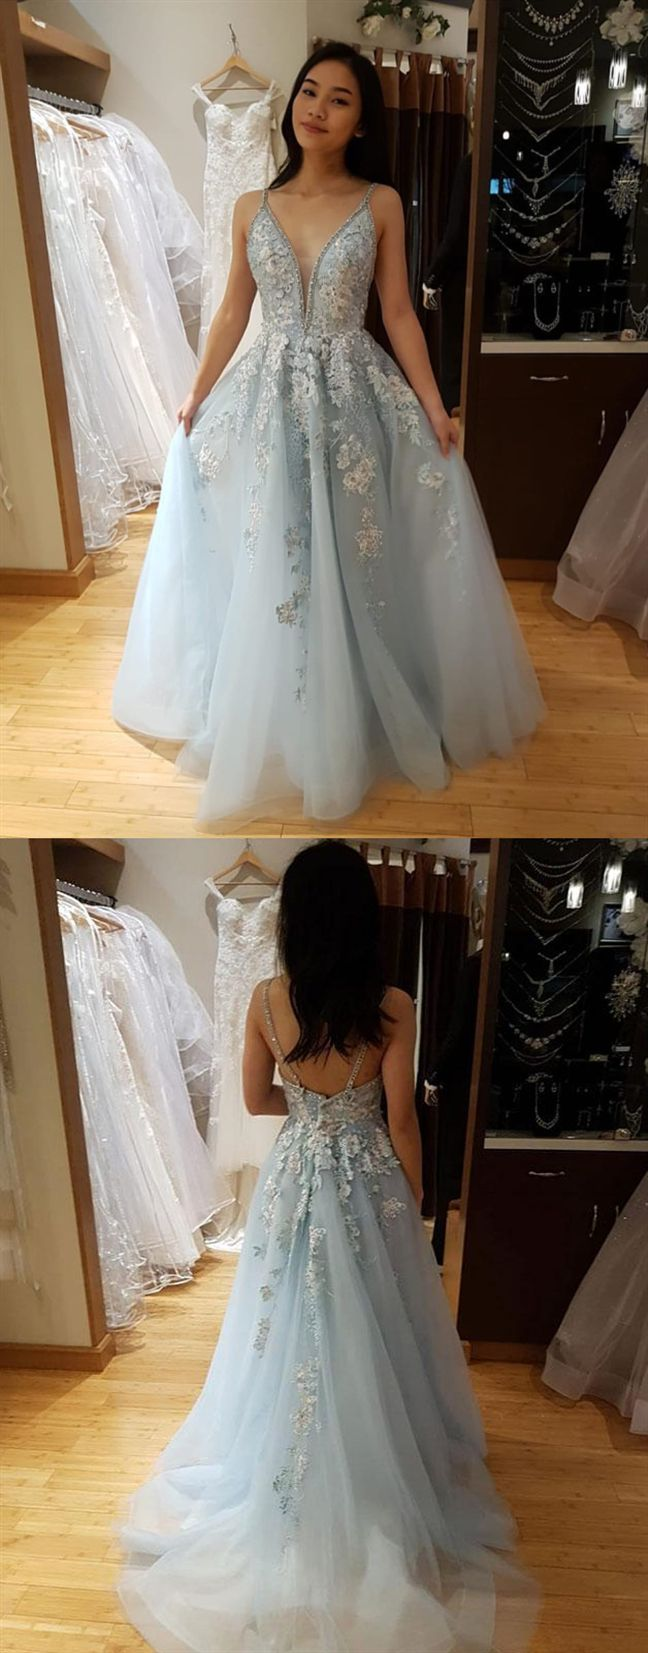 5598d1e8039ac princess light blue long prom dresses, spaghetti straps graduation party  dresses for teens, fashion prom gowns with appliques #dressestime #beading # gowns